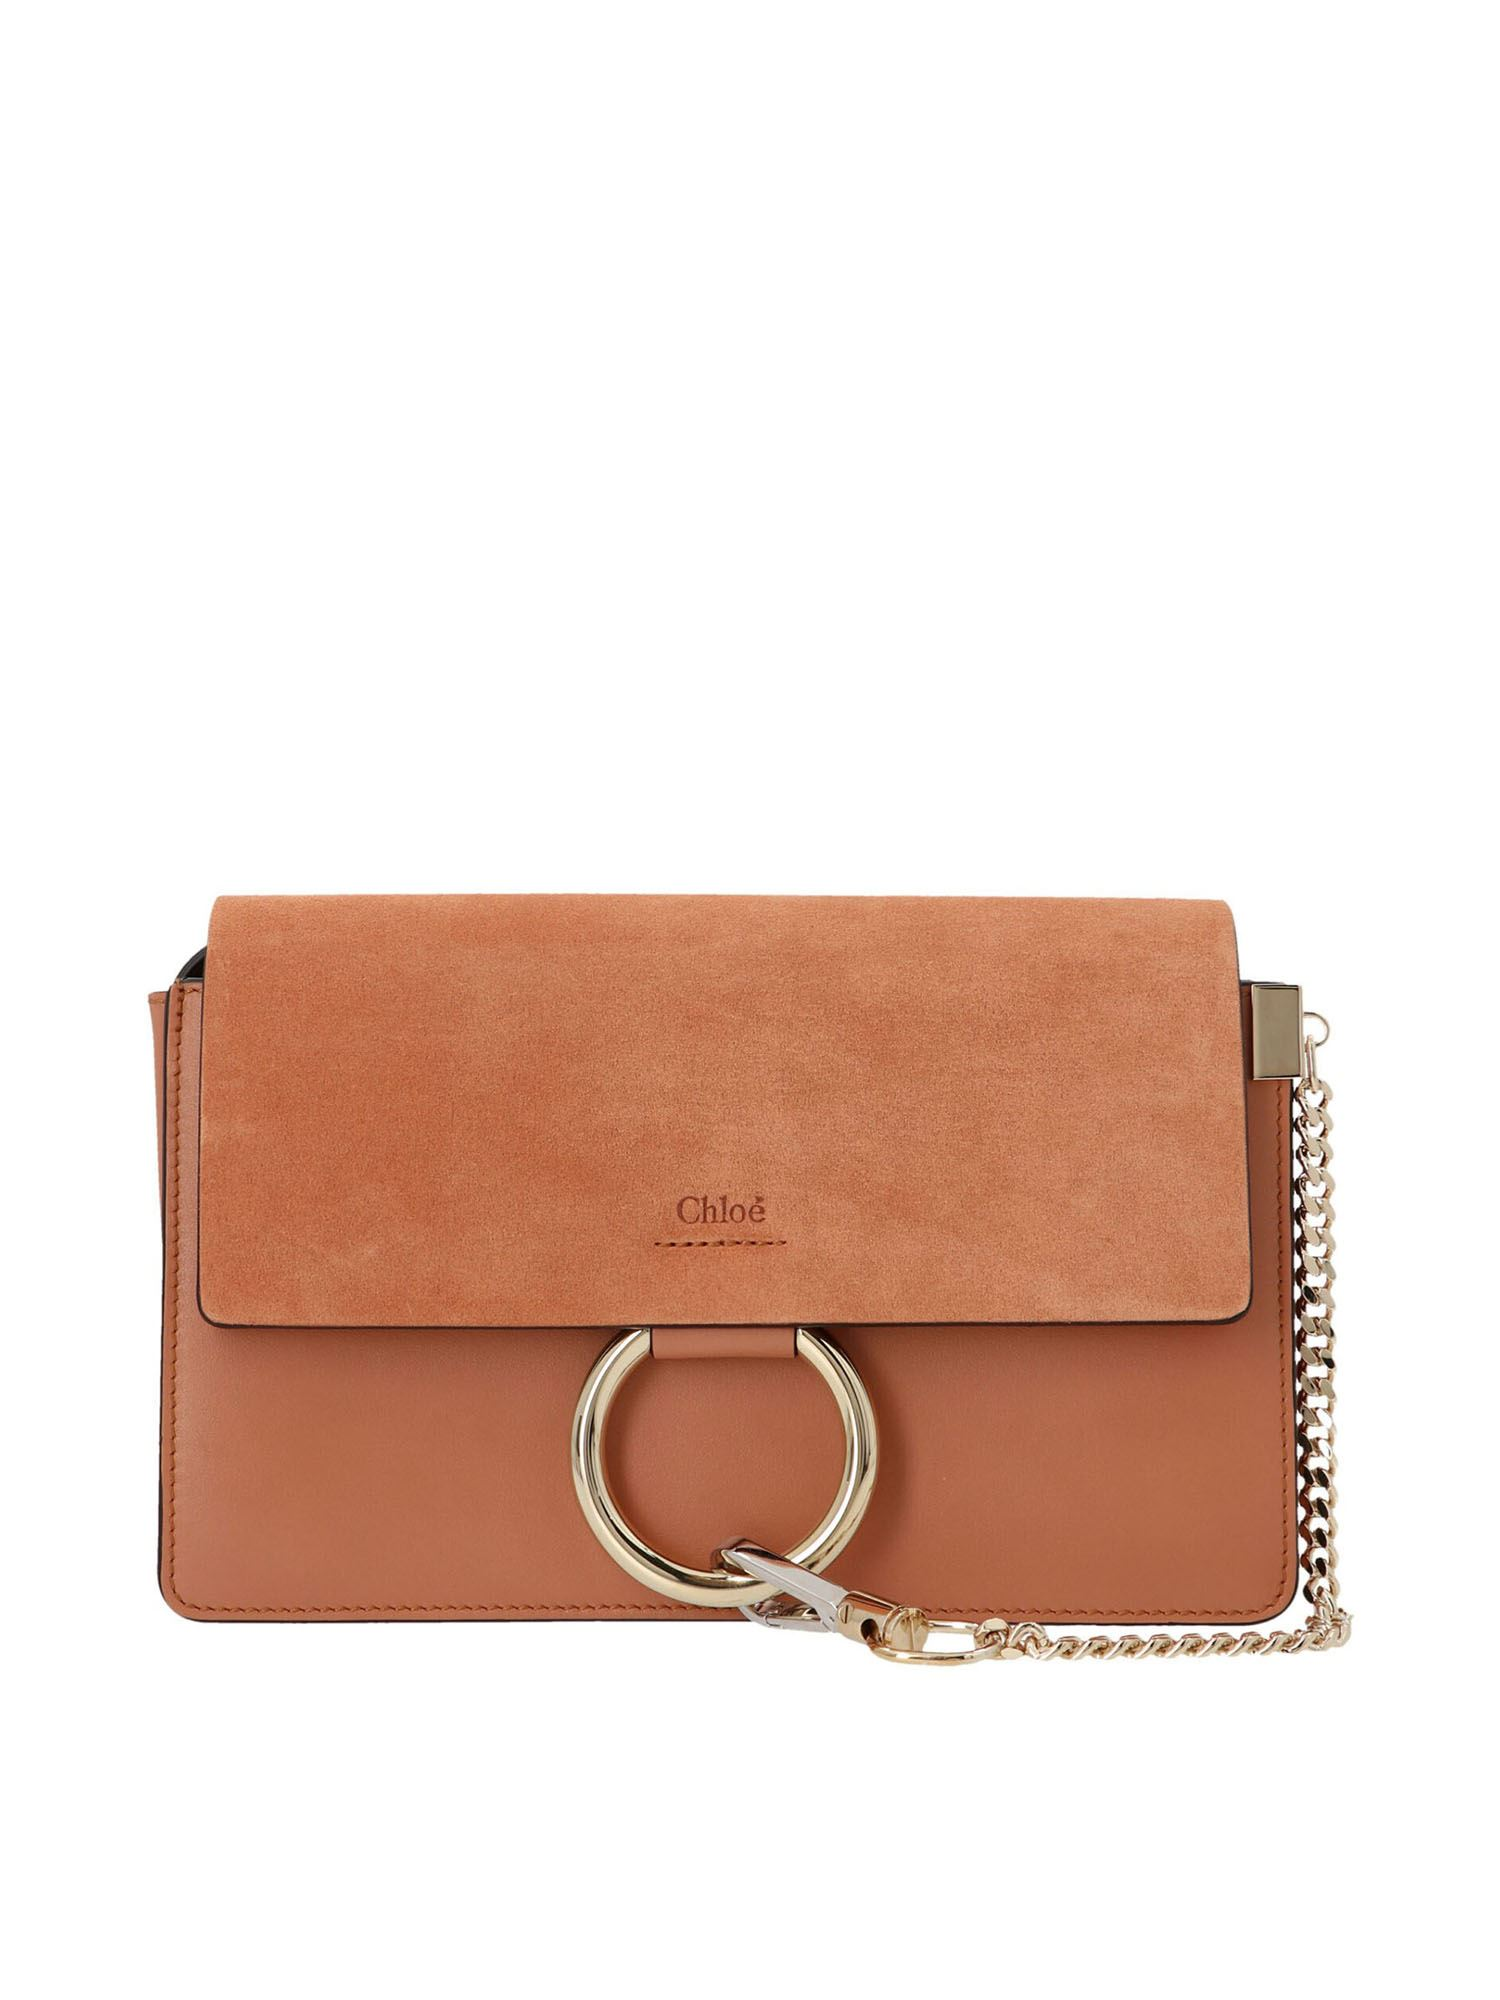 Chloé FAYE SMALL SHOULDER BAG IN MUTED BROWN